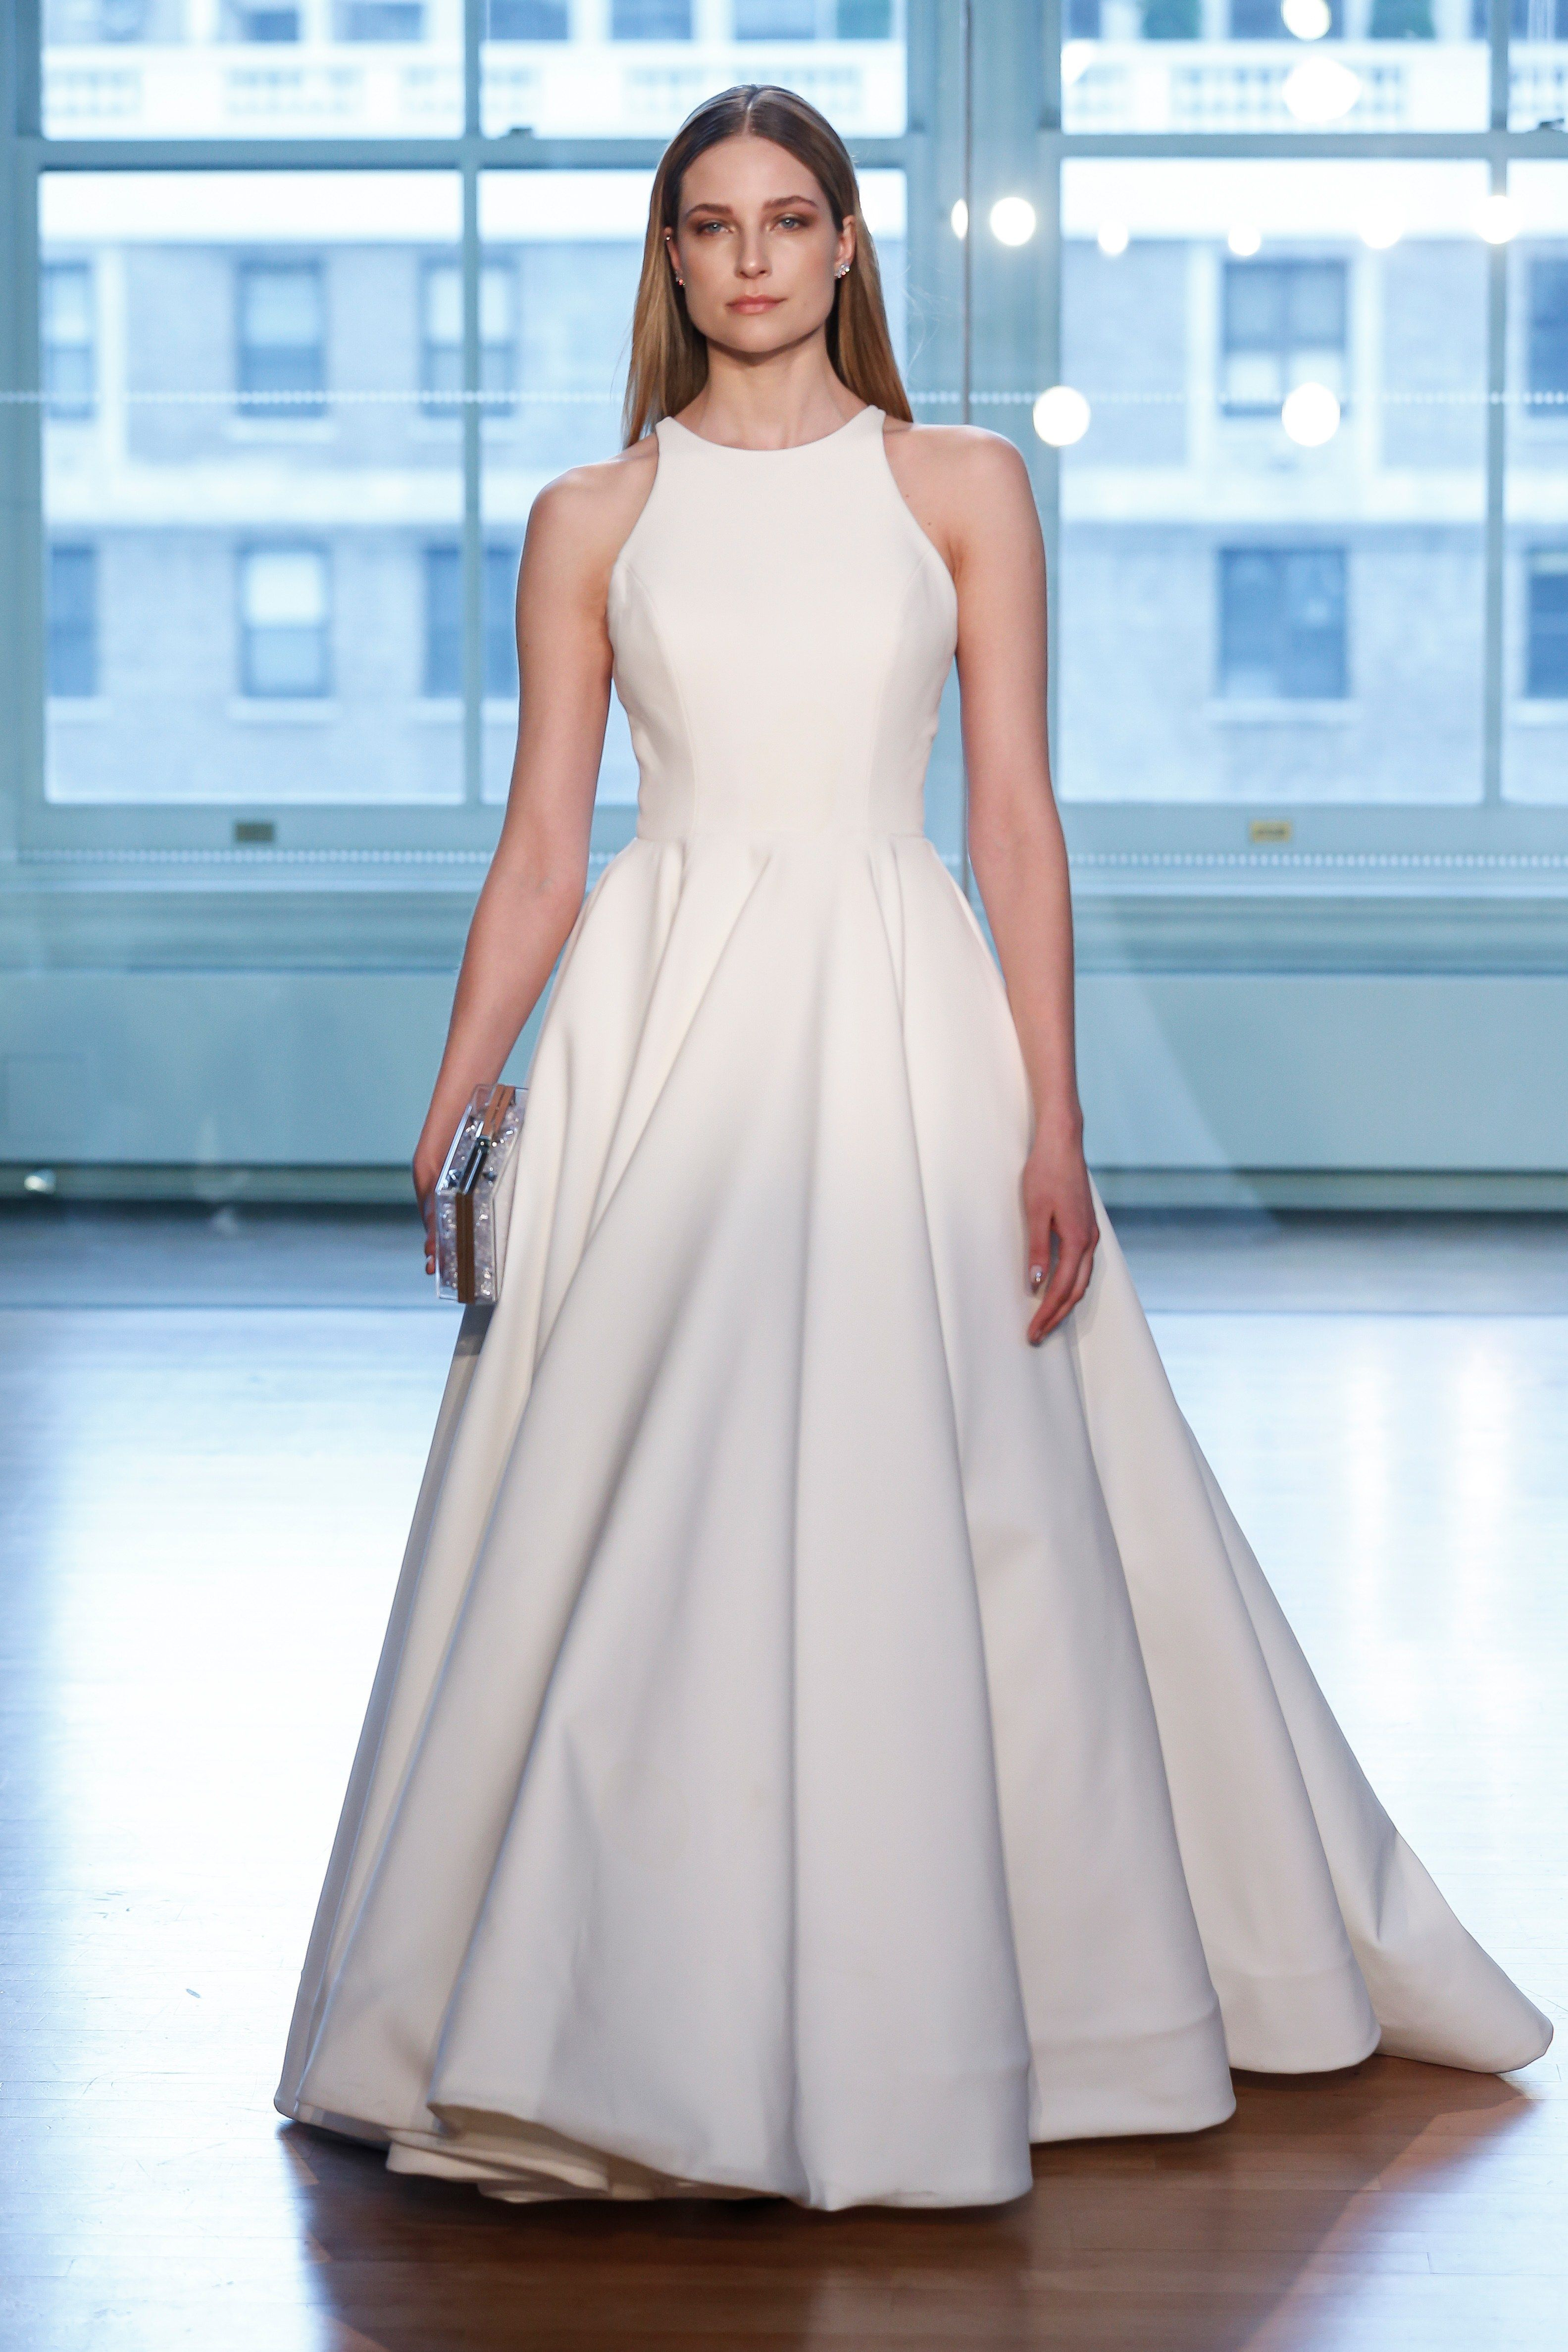 Justin alexander bridal wedding dress collection spring 2019 justin alexander bridal wedding dress collection spring 2019 brides junglespirit Images